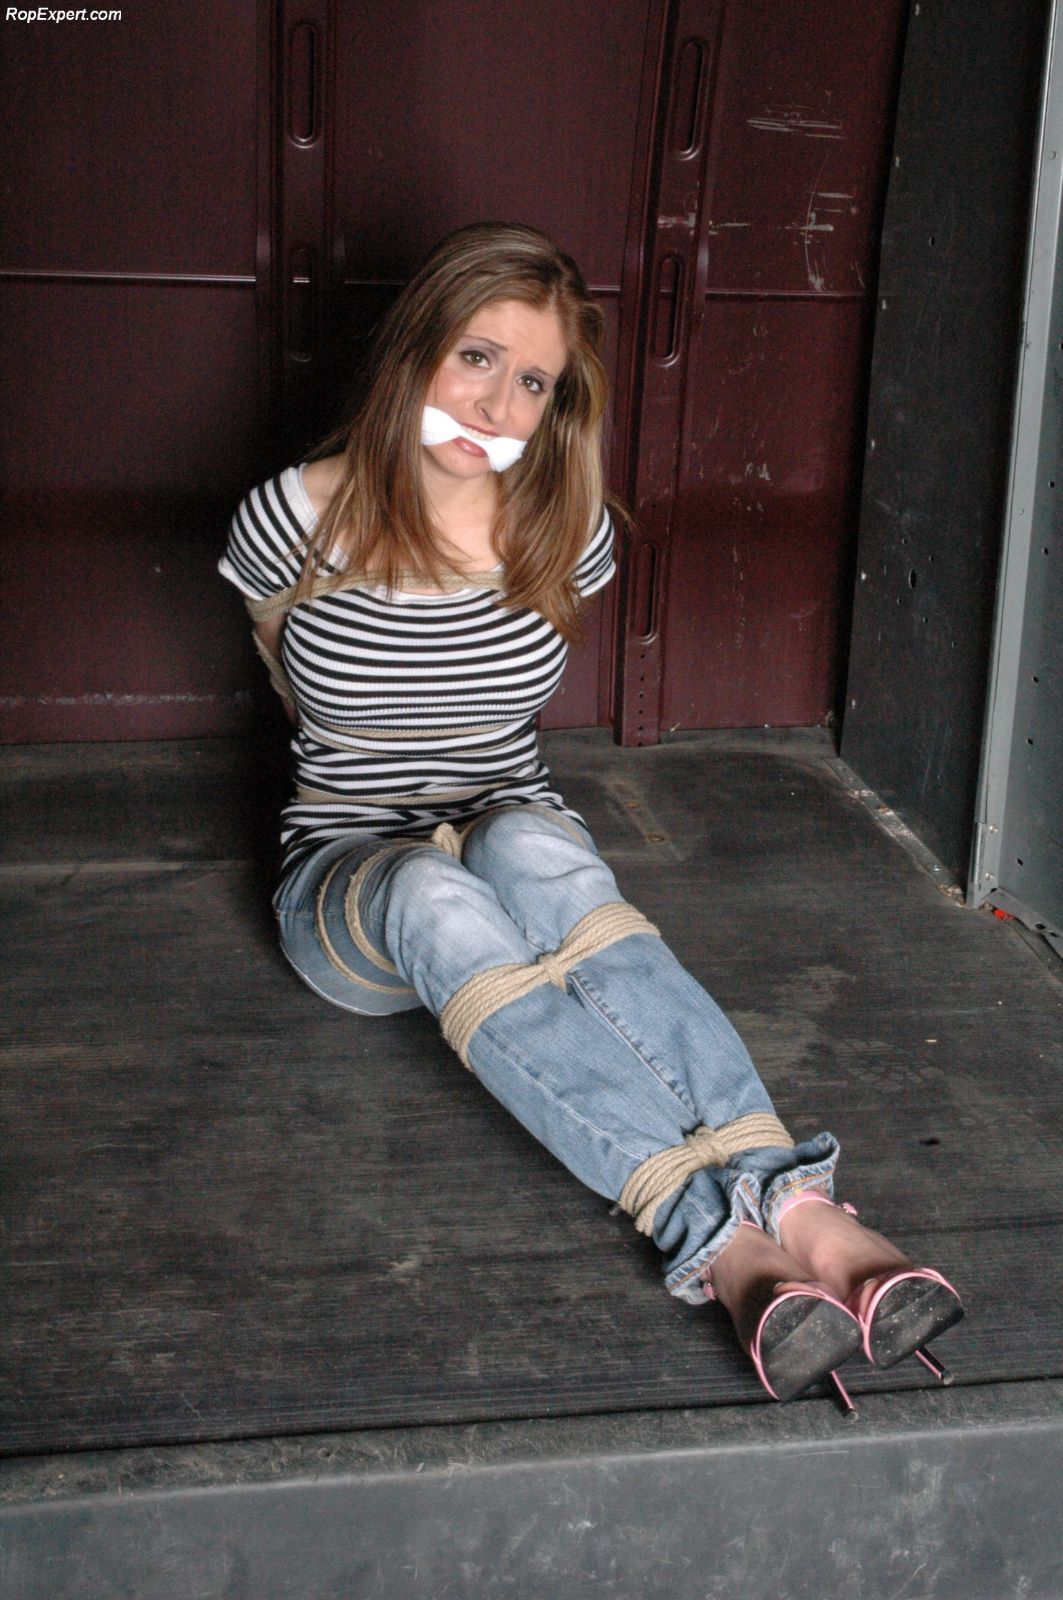 Girls Bound In Jeans Photo Just Bound Gifs T Girls And-4468